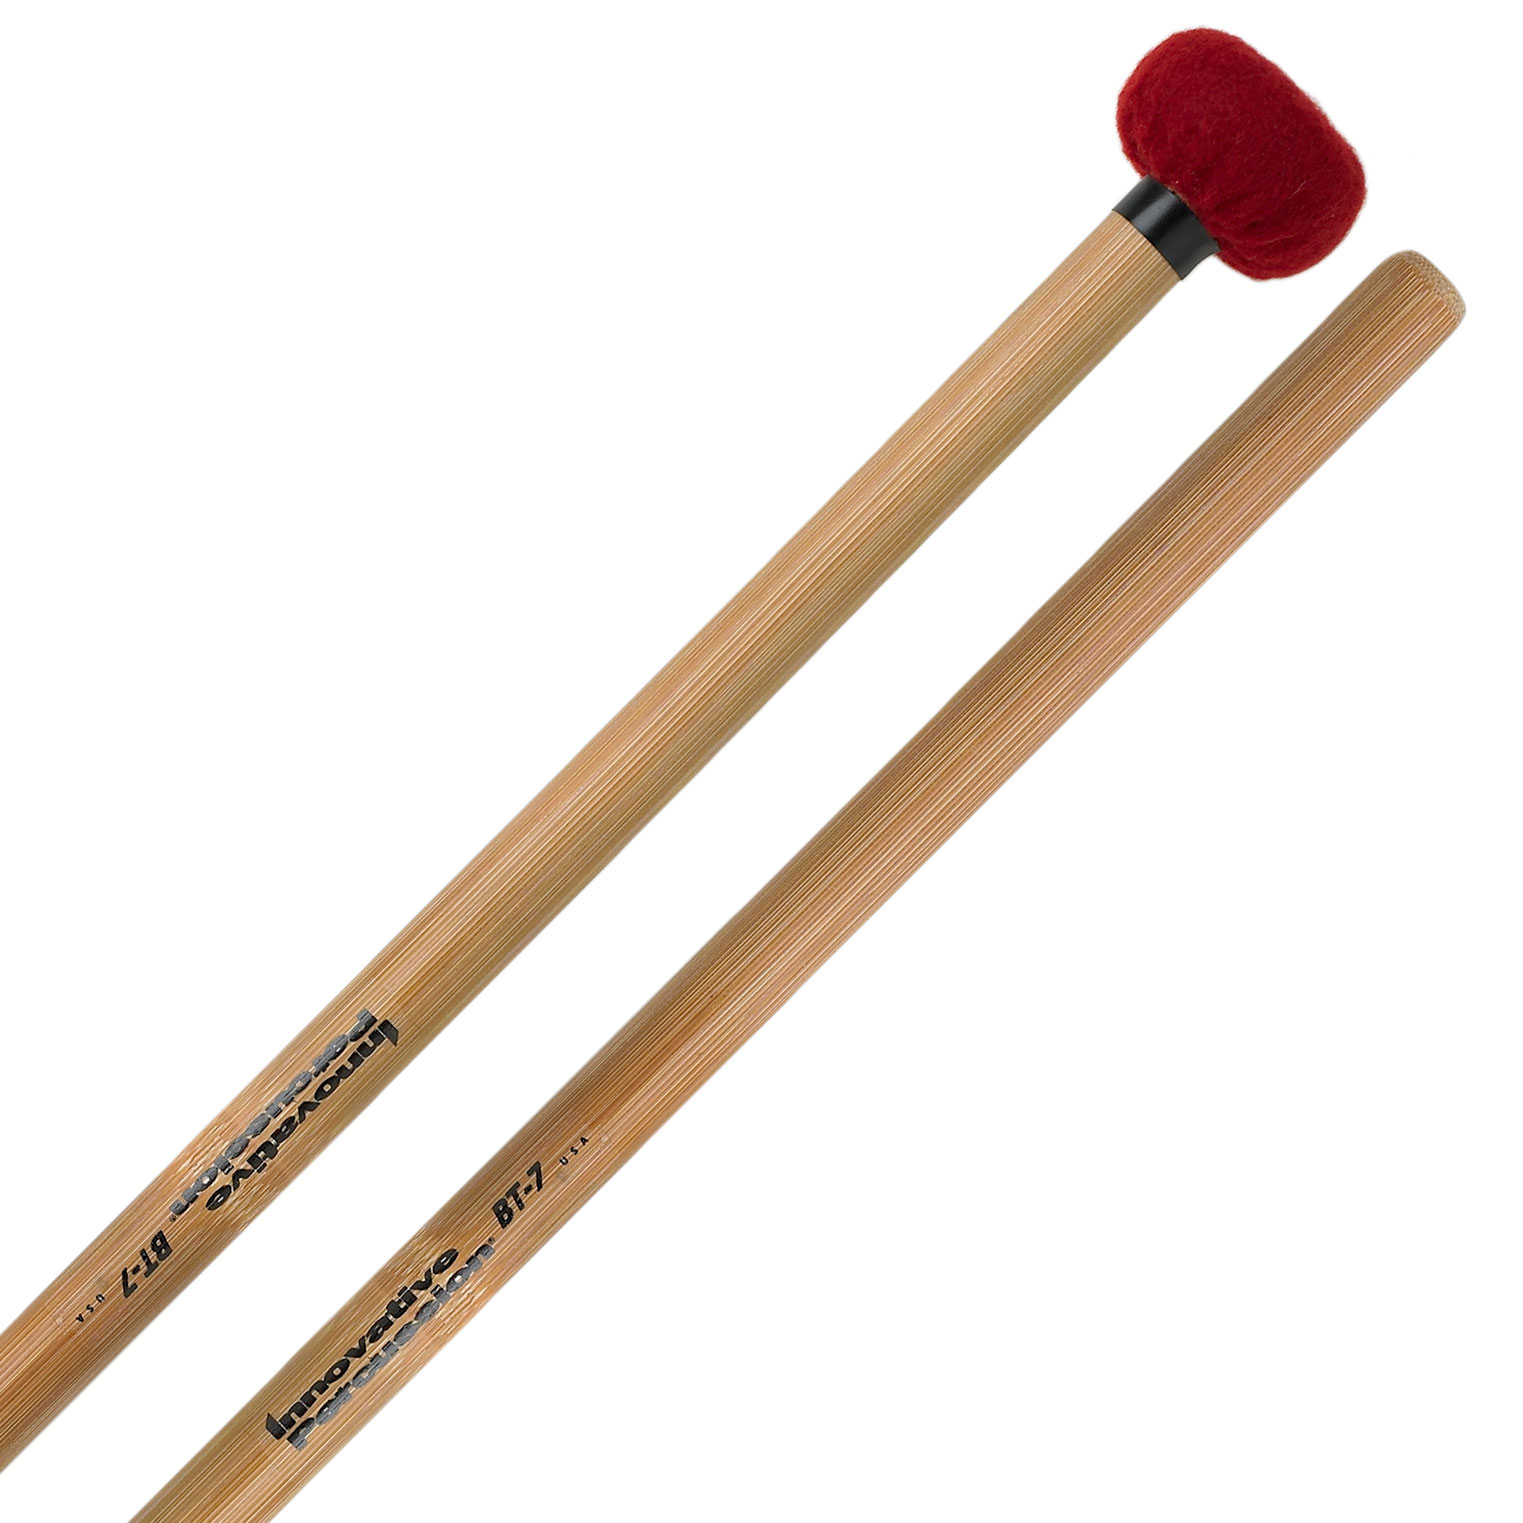 Innovative Percussion Bamboo Series Ultra Staccato Timpani Mallets